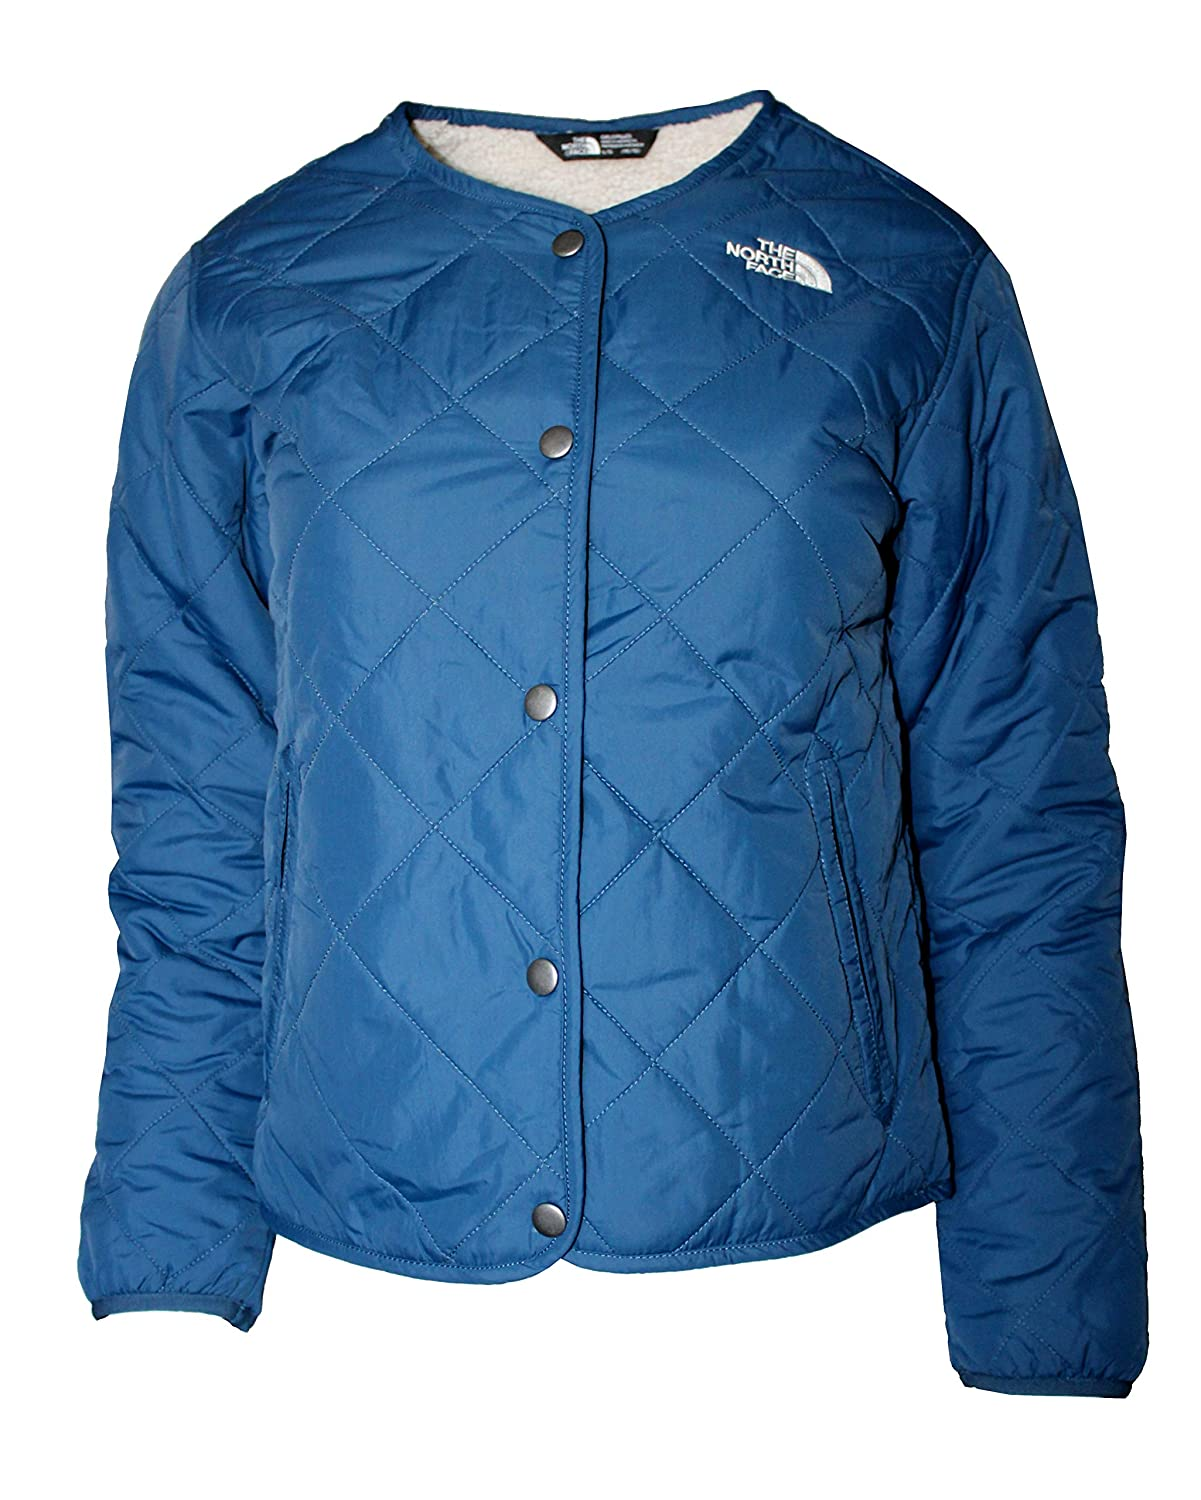 The North Face Sherpa Youth Girls 8-18 Plush Allover Quilted Jacket